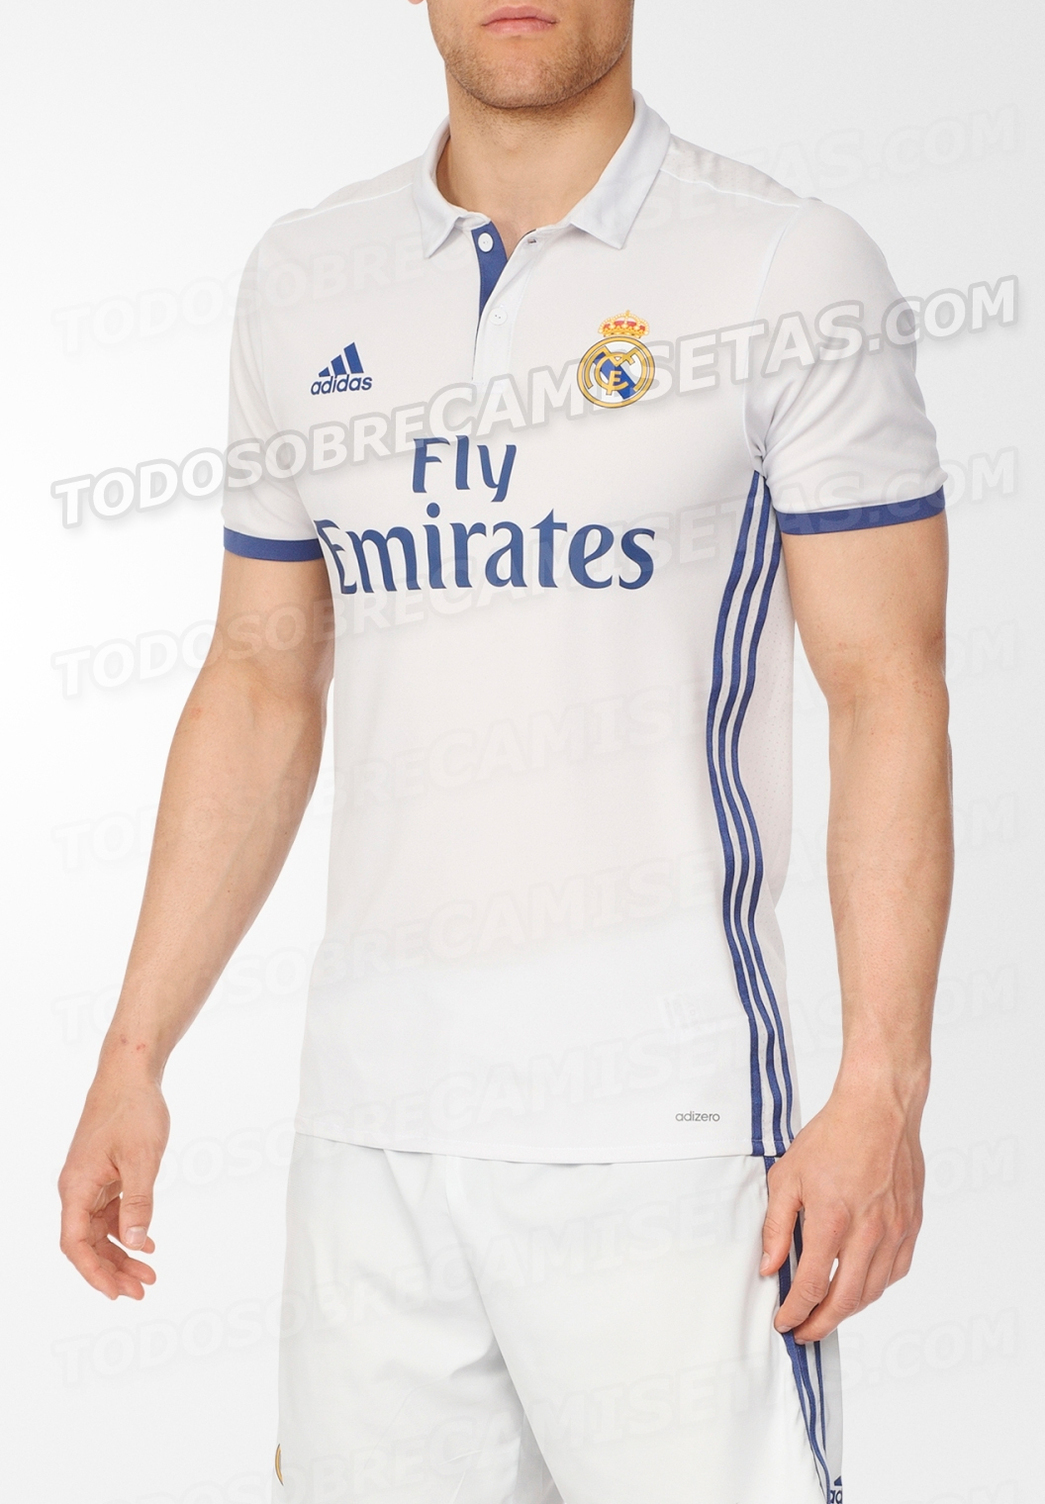 Real-Madrid-16-17-adidas-new-home-kit-leaked-9.jpg